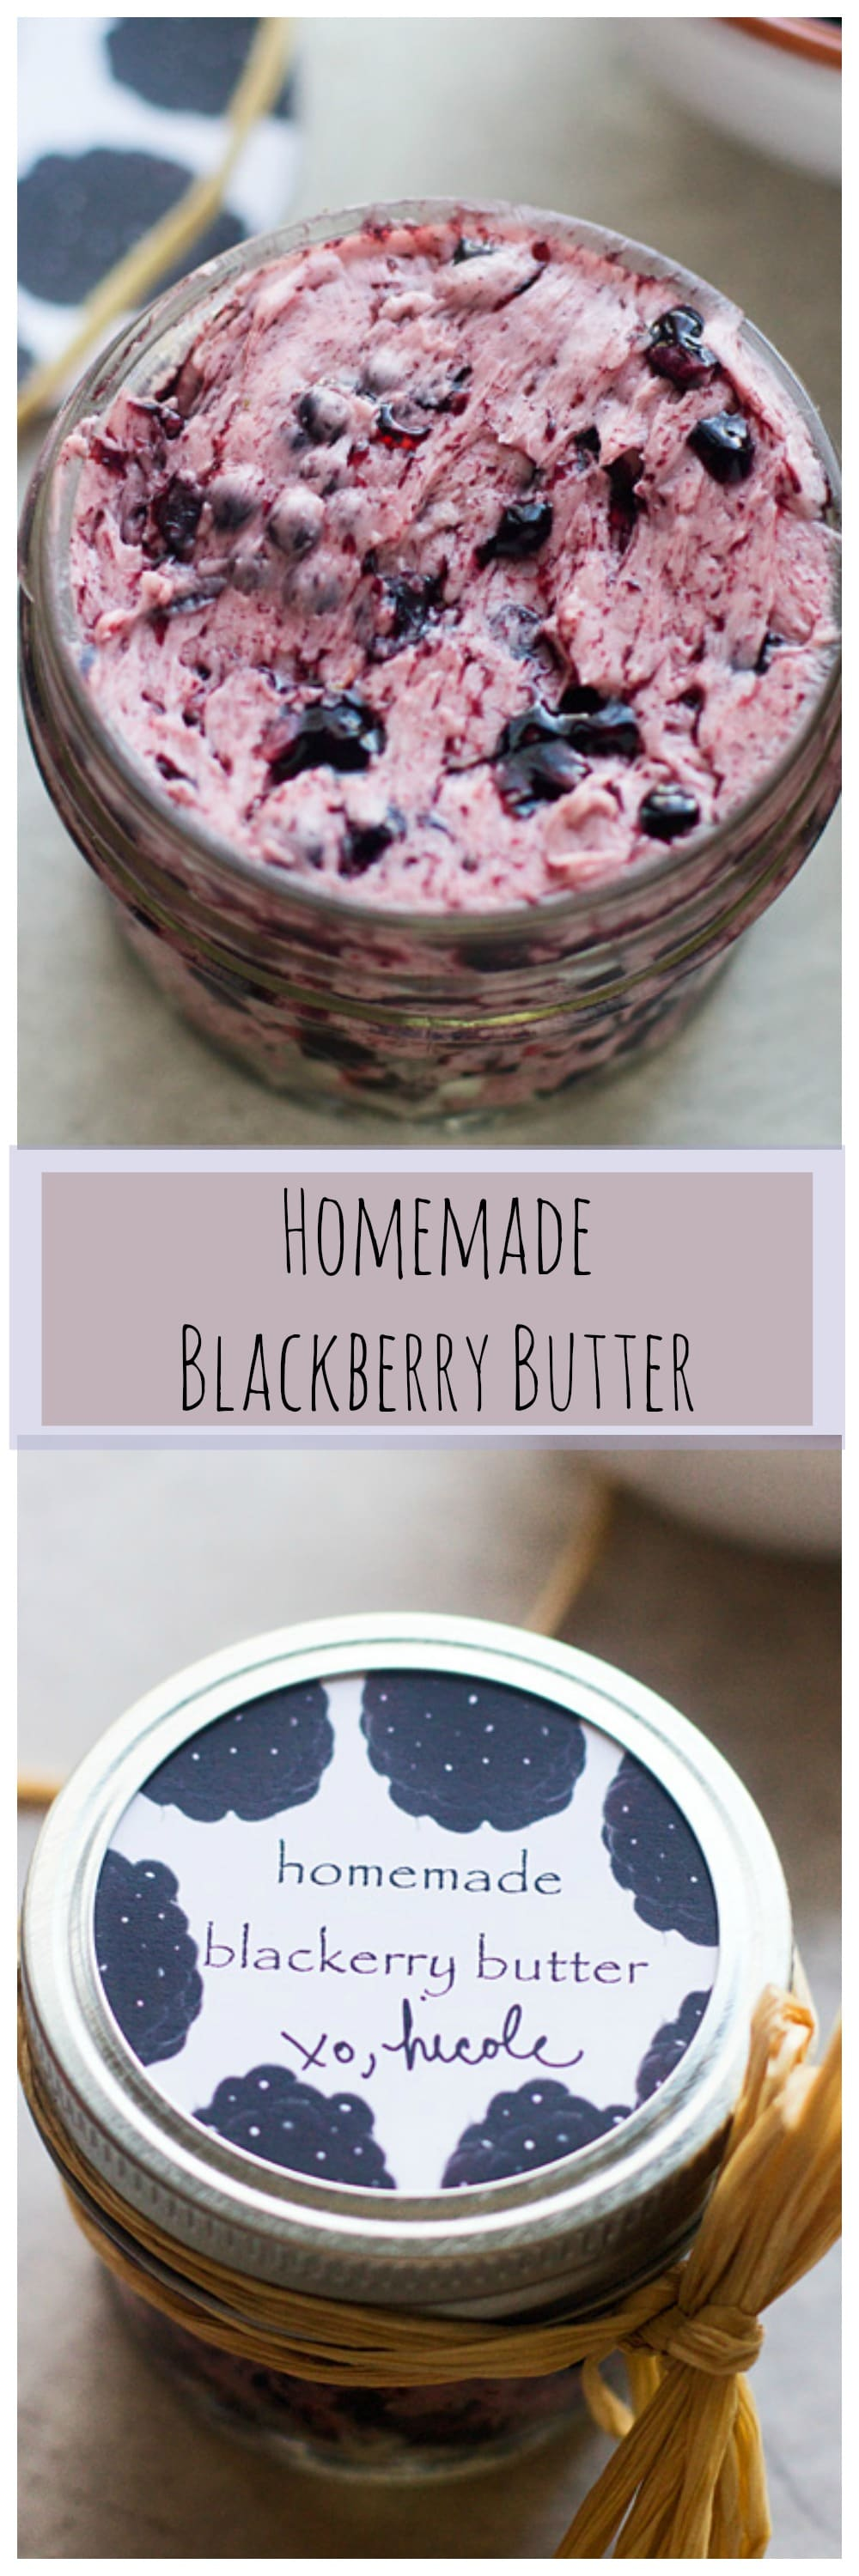 Homemade Blackberry Butter -- Perfect to spread to breakfast breads and the perfect DIY gift!.